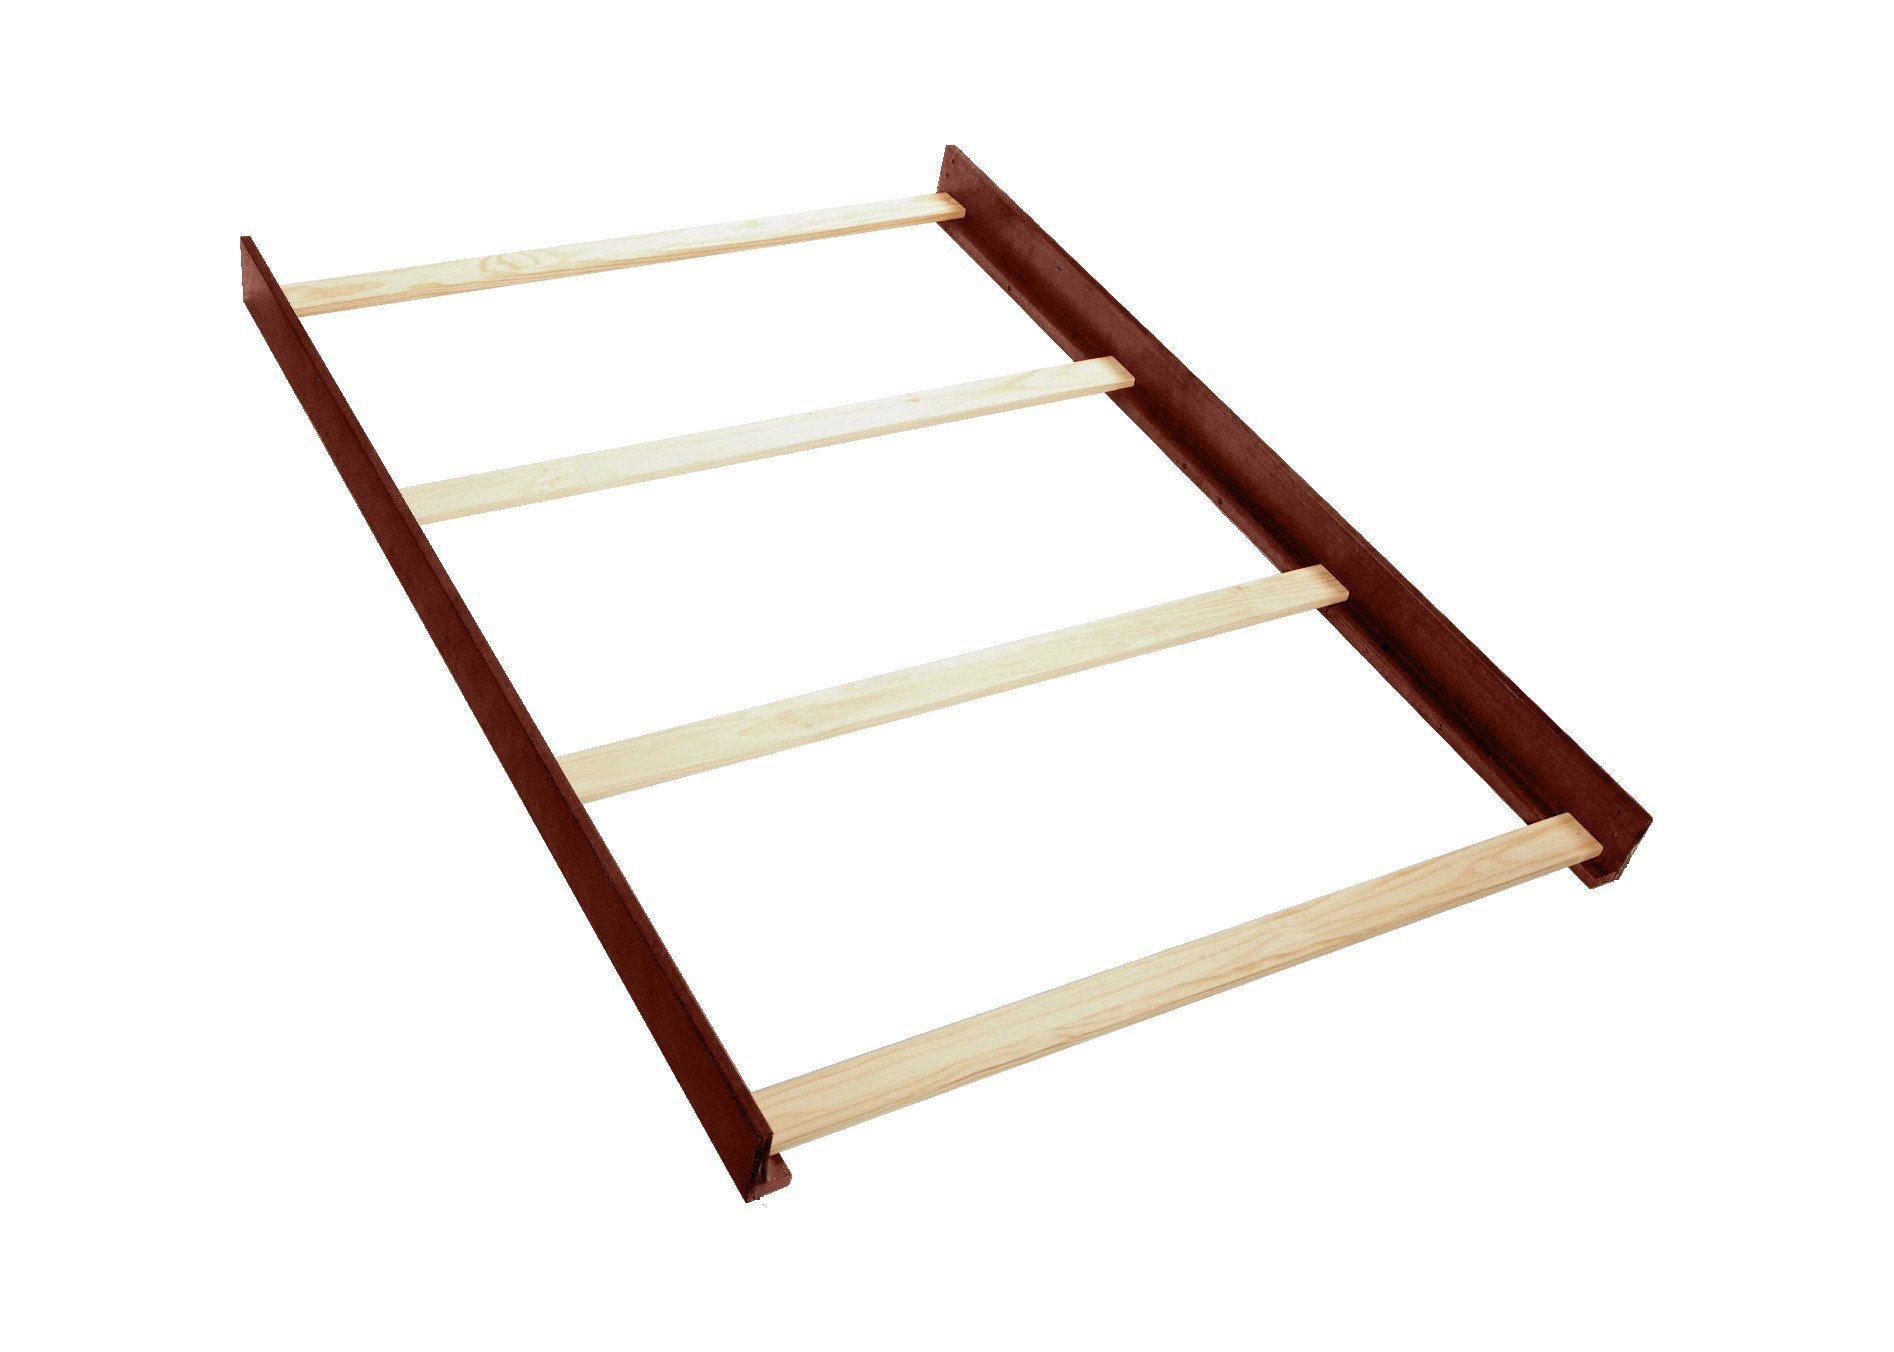 Solid Wood Full Size Conversion Kit Bed Rails for Baby Cache Cribs - Cherry